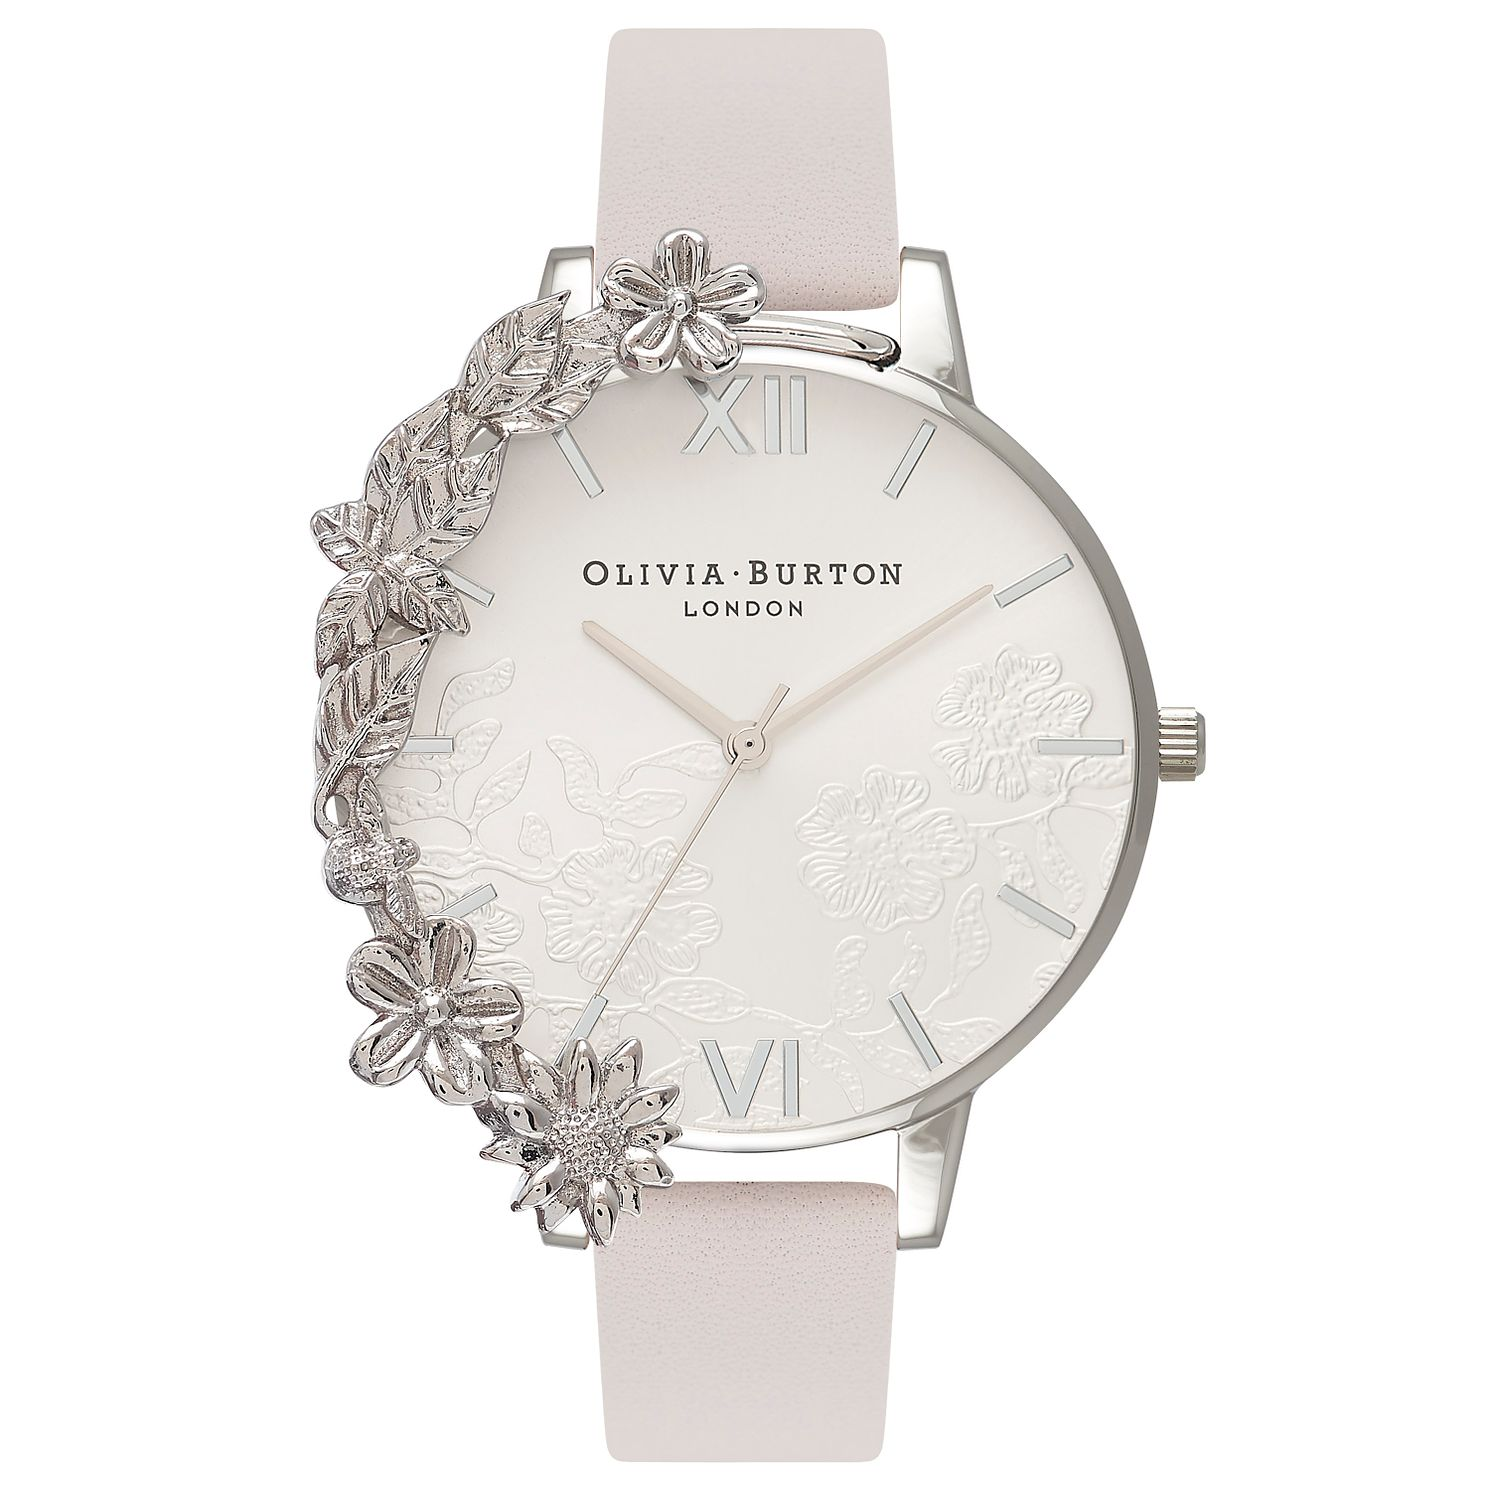 Olivia Burton Stainless Steel Cuff Silver Bracelet Watch - Product number 4718704